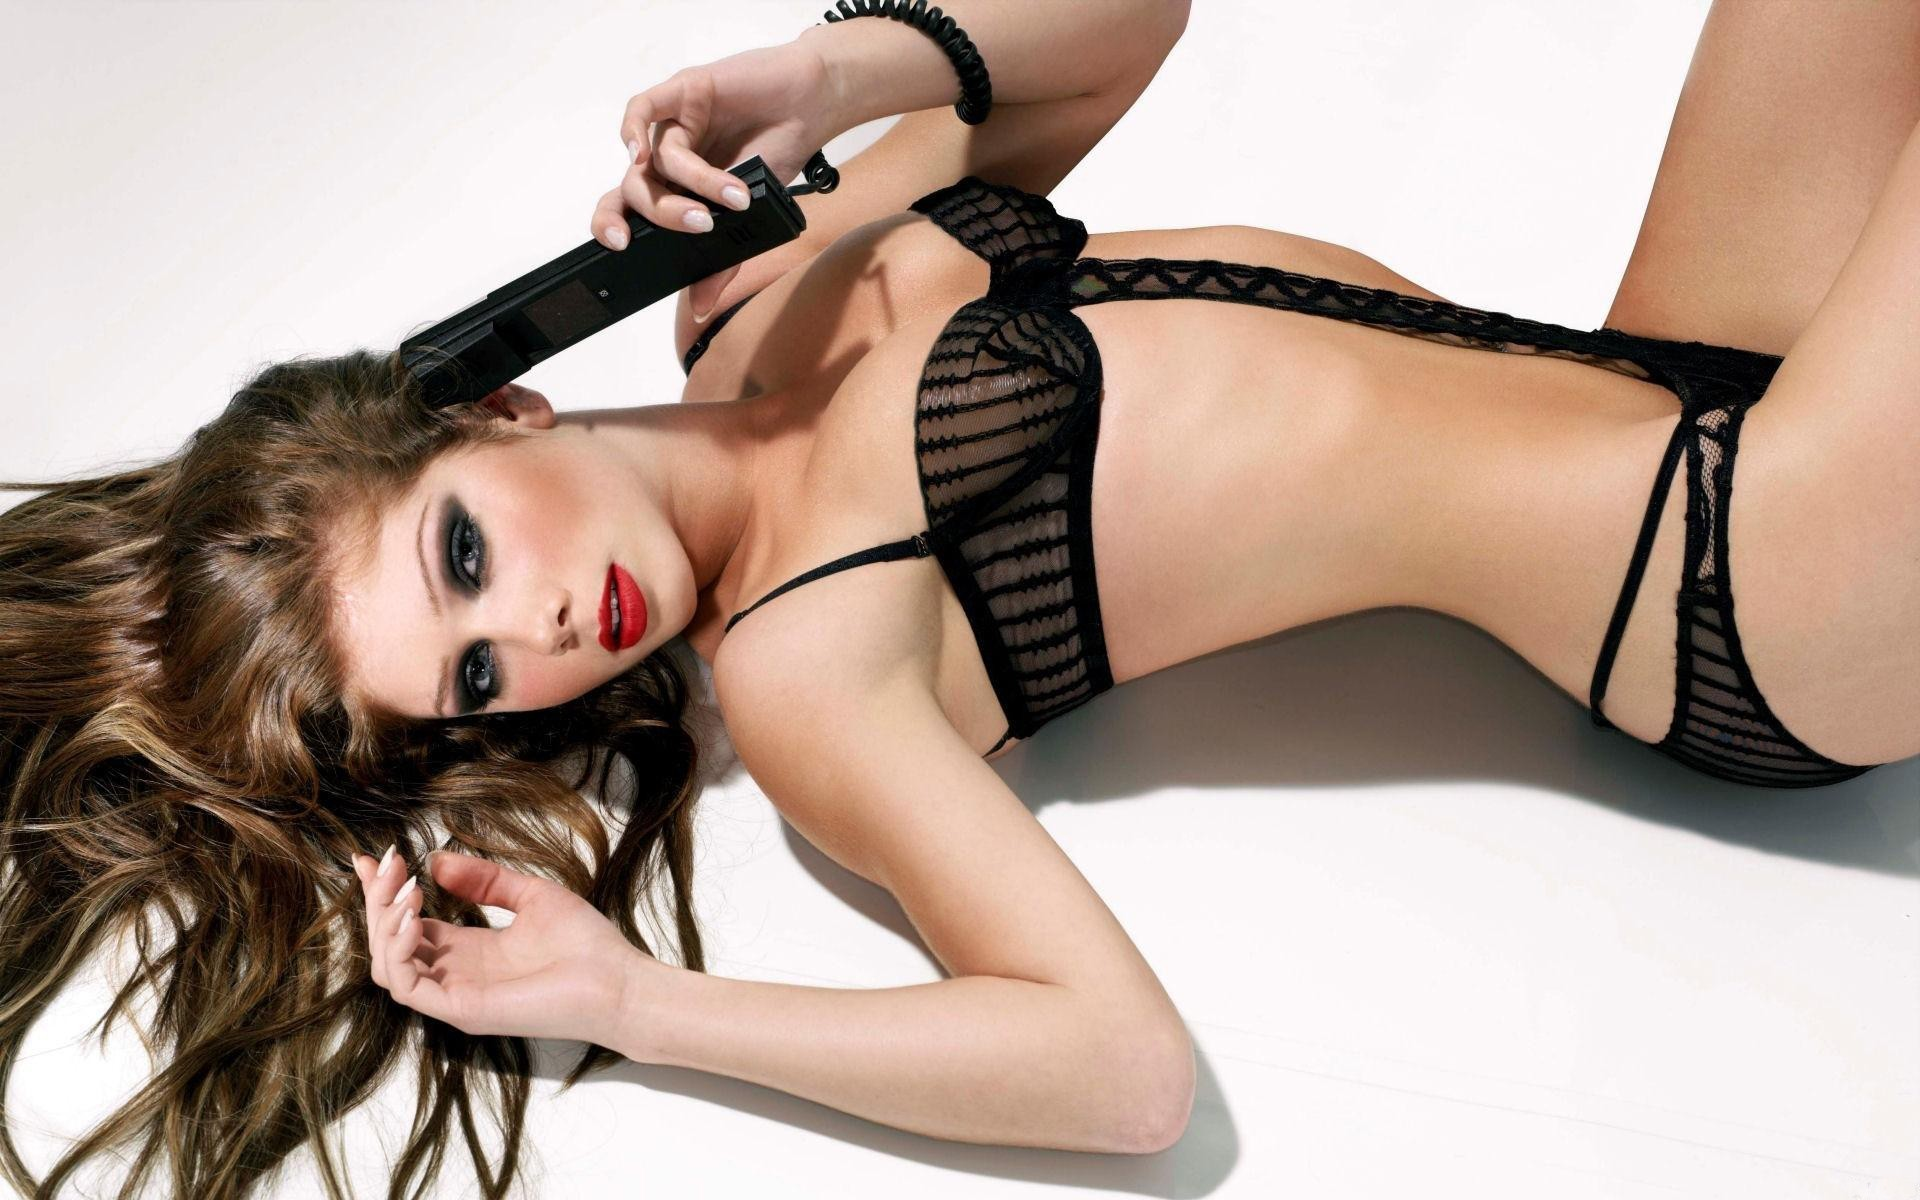 blondes woman lying down HD Wallpaper